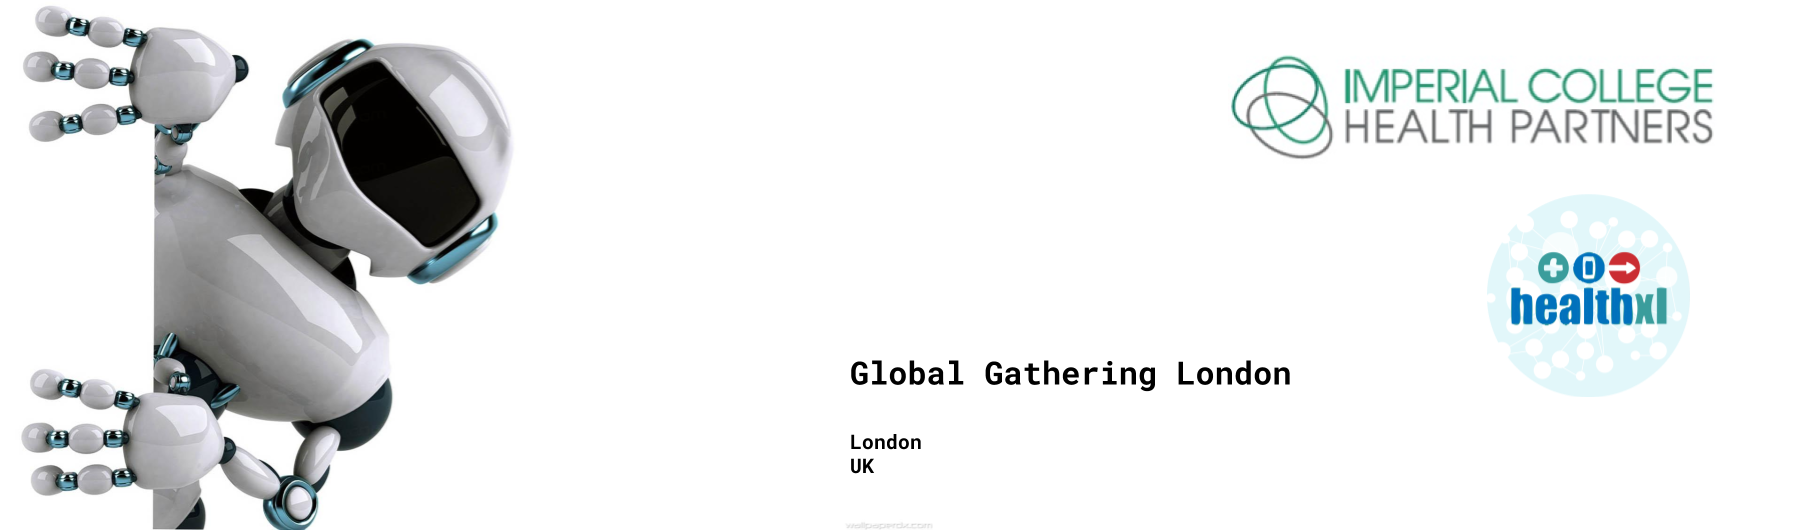 HealthXL Global Gathering in London